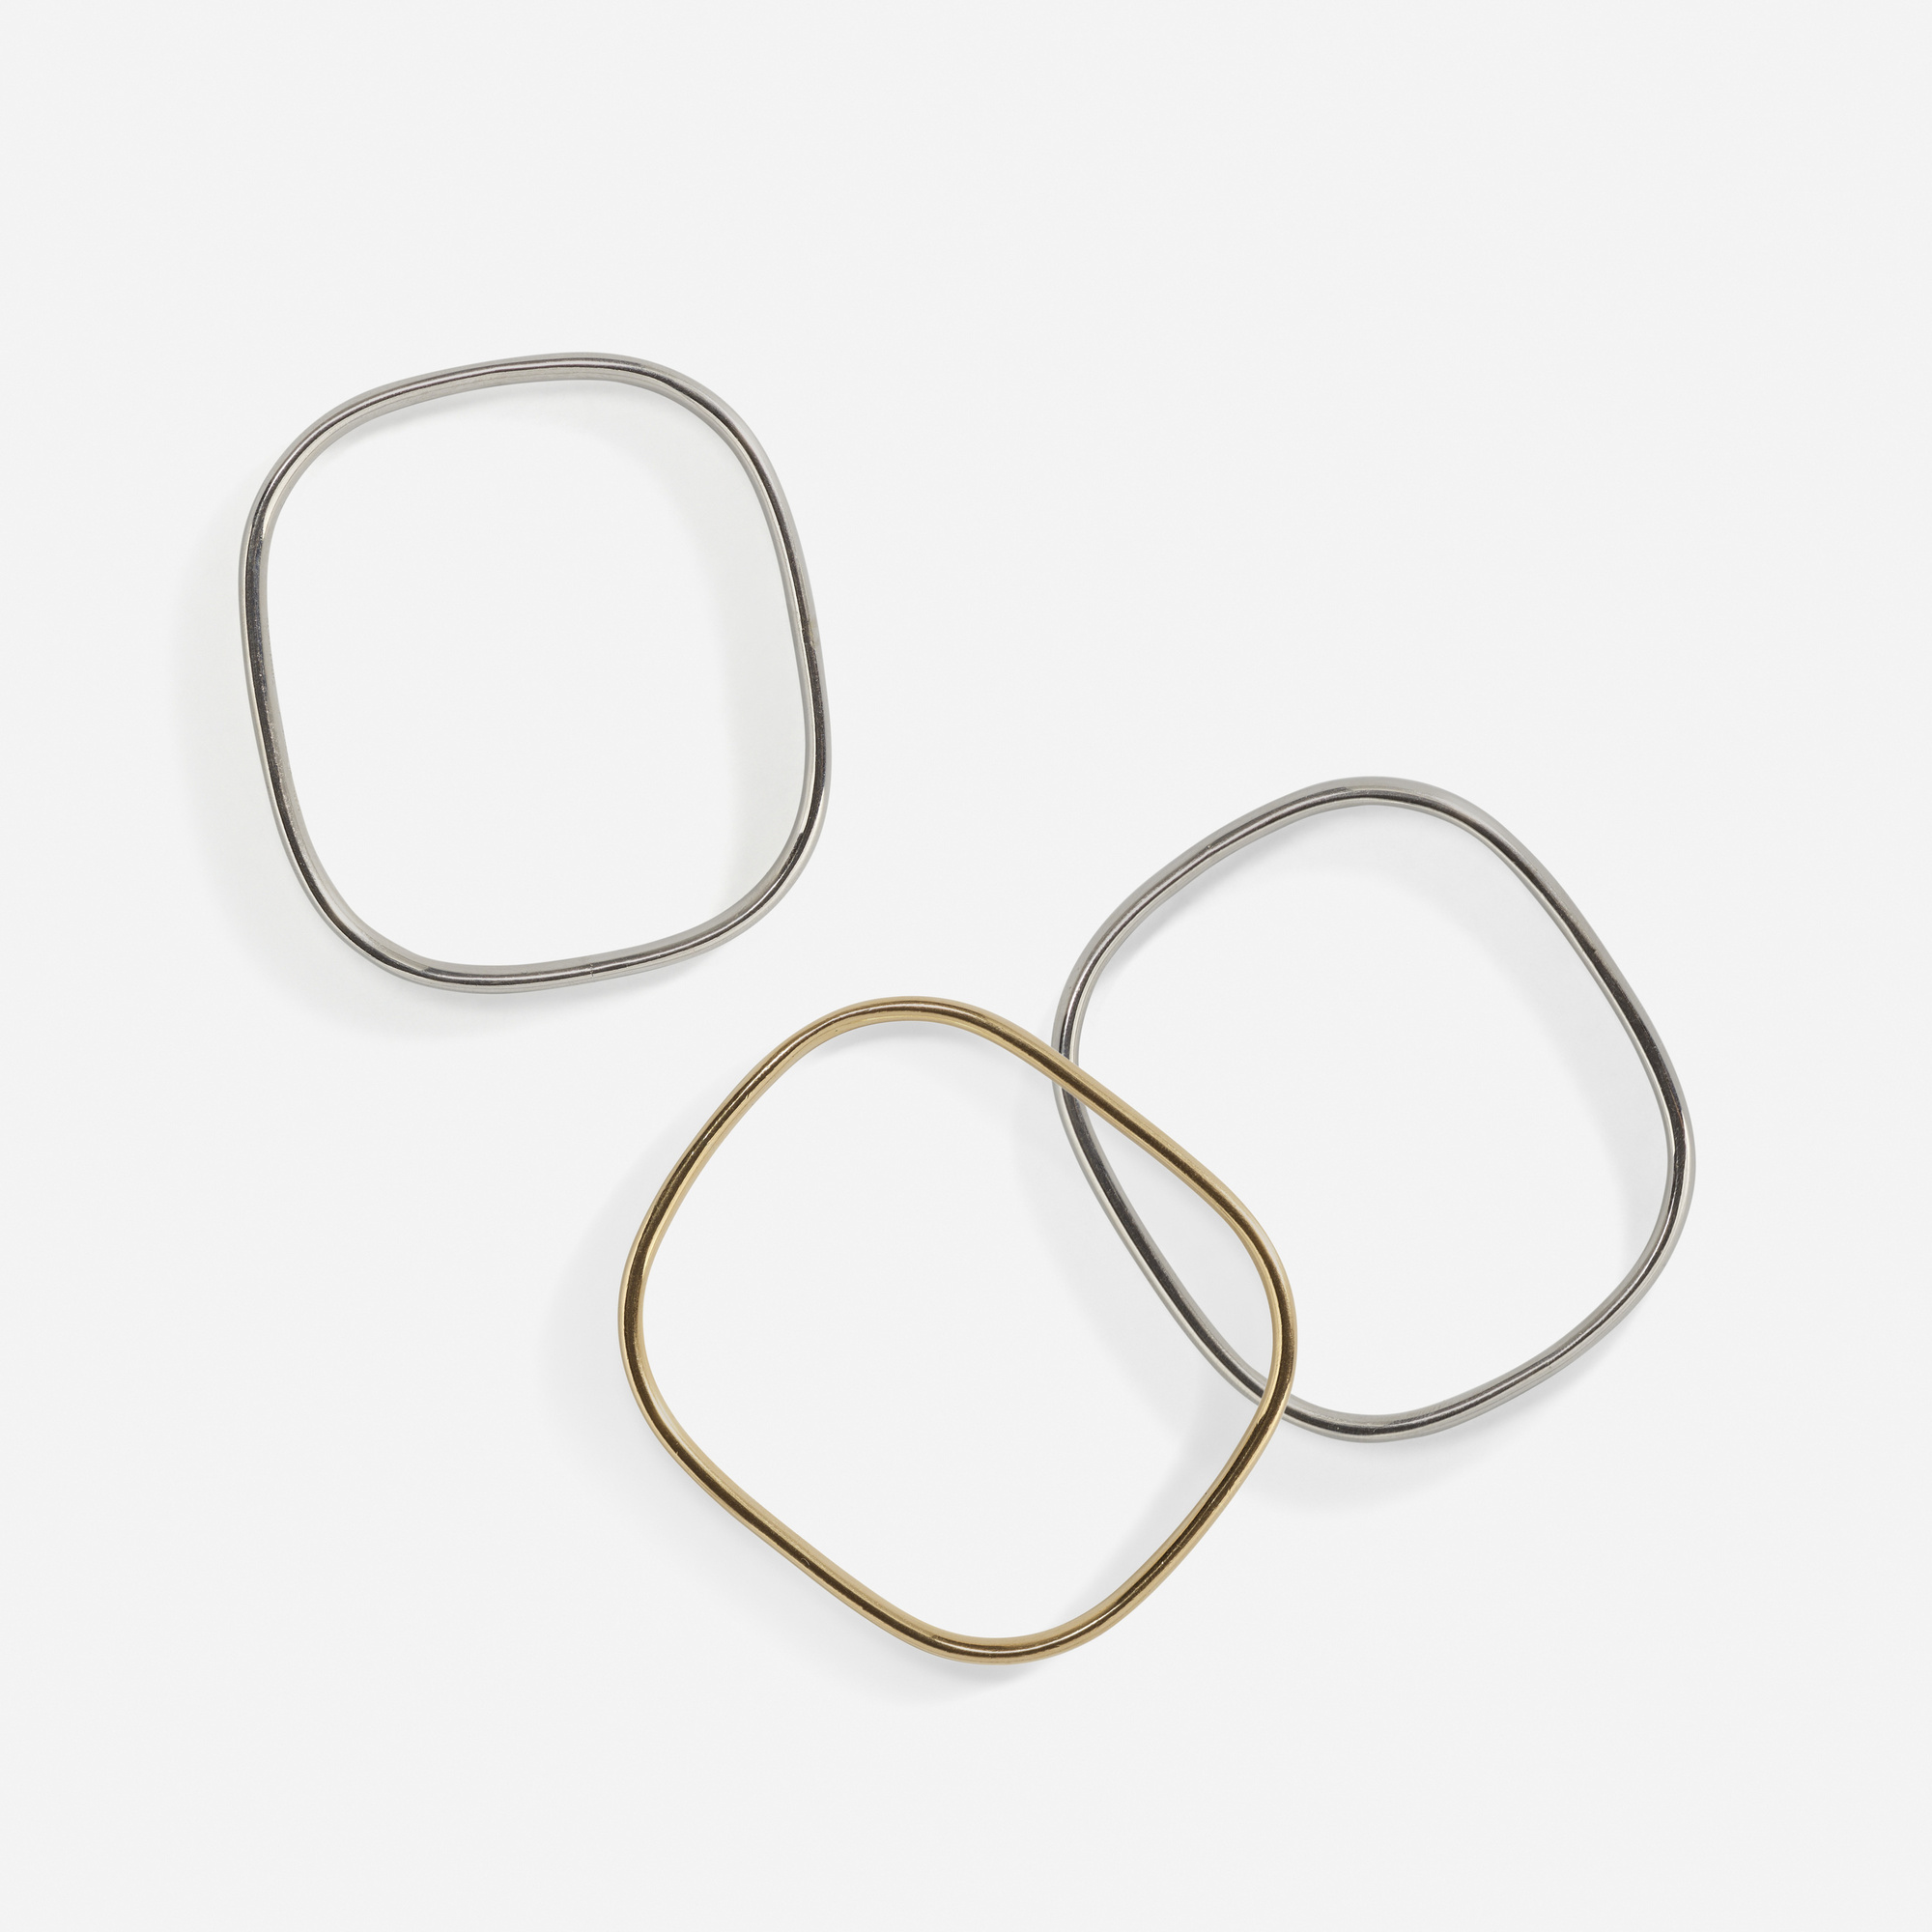 101: Jean Dinh Van for Cartier / A set of three gold bangles (1 of 2)